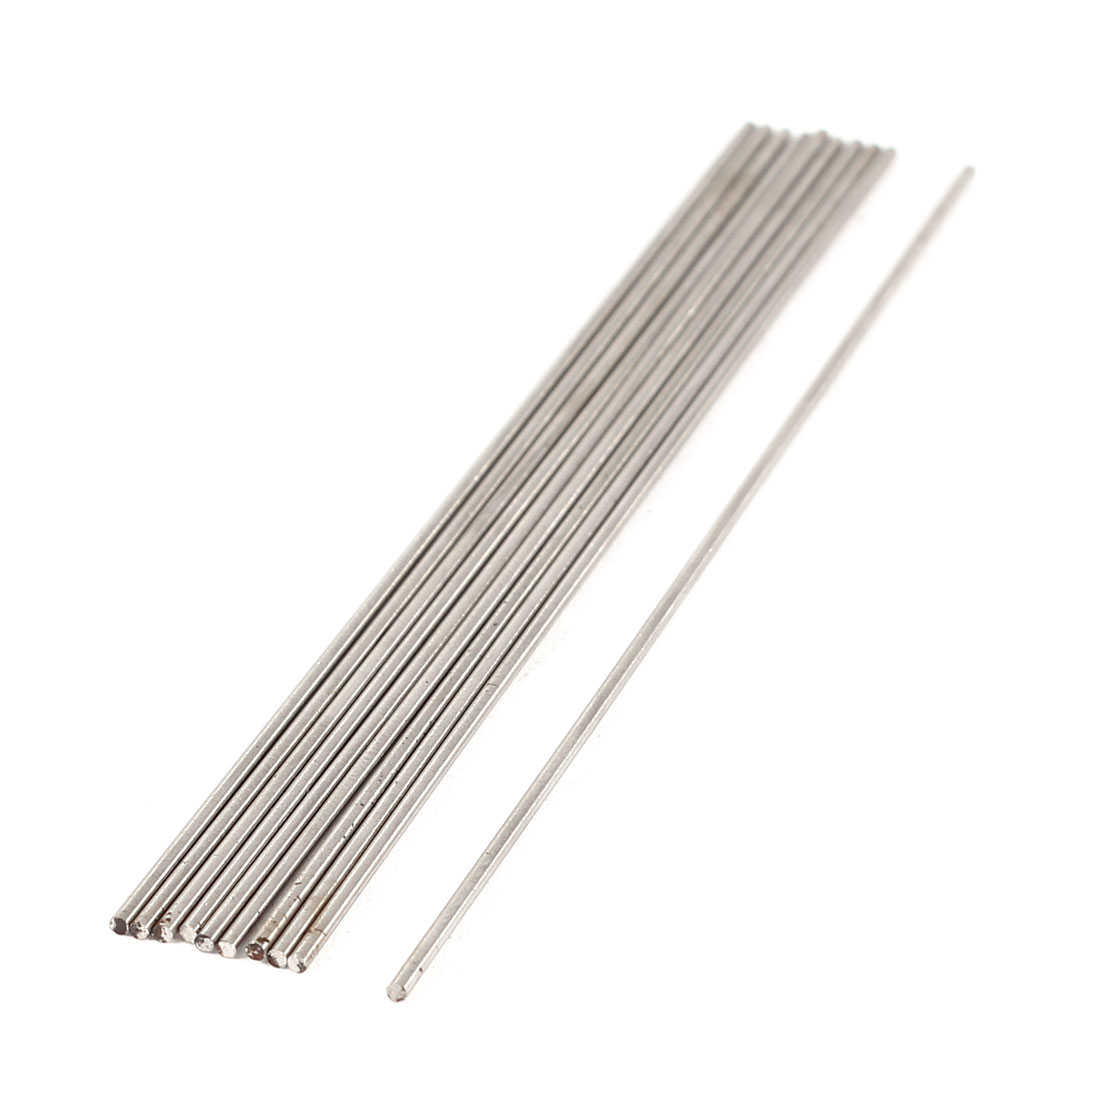 Unique Bargains 10 Pcs 3.9' Long Machine Grooving Tool Round Turning Lathe Bars